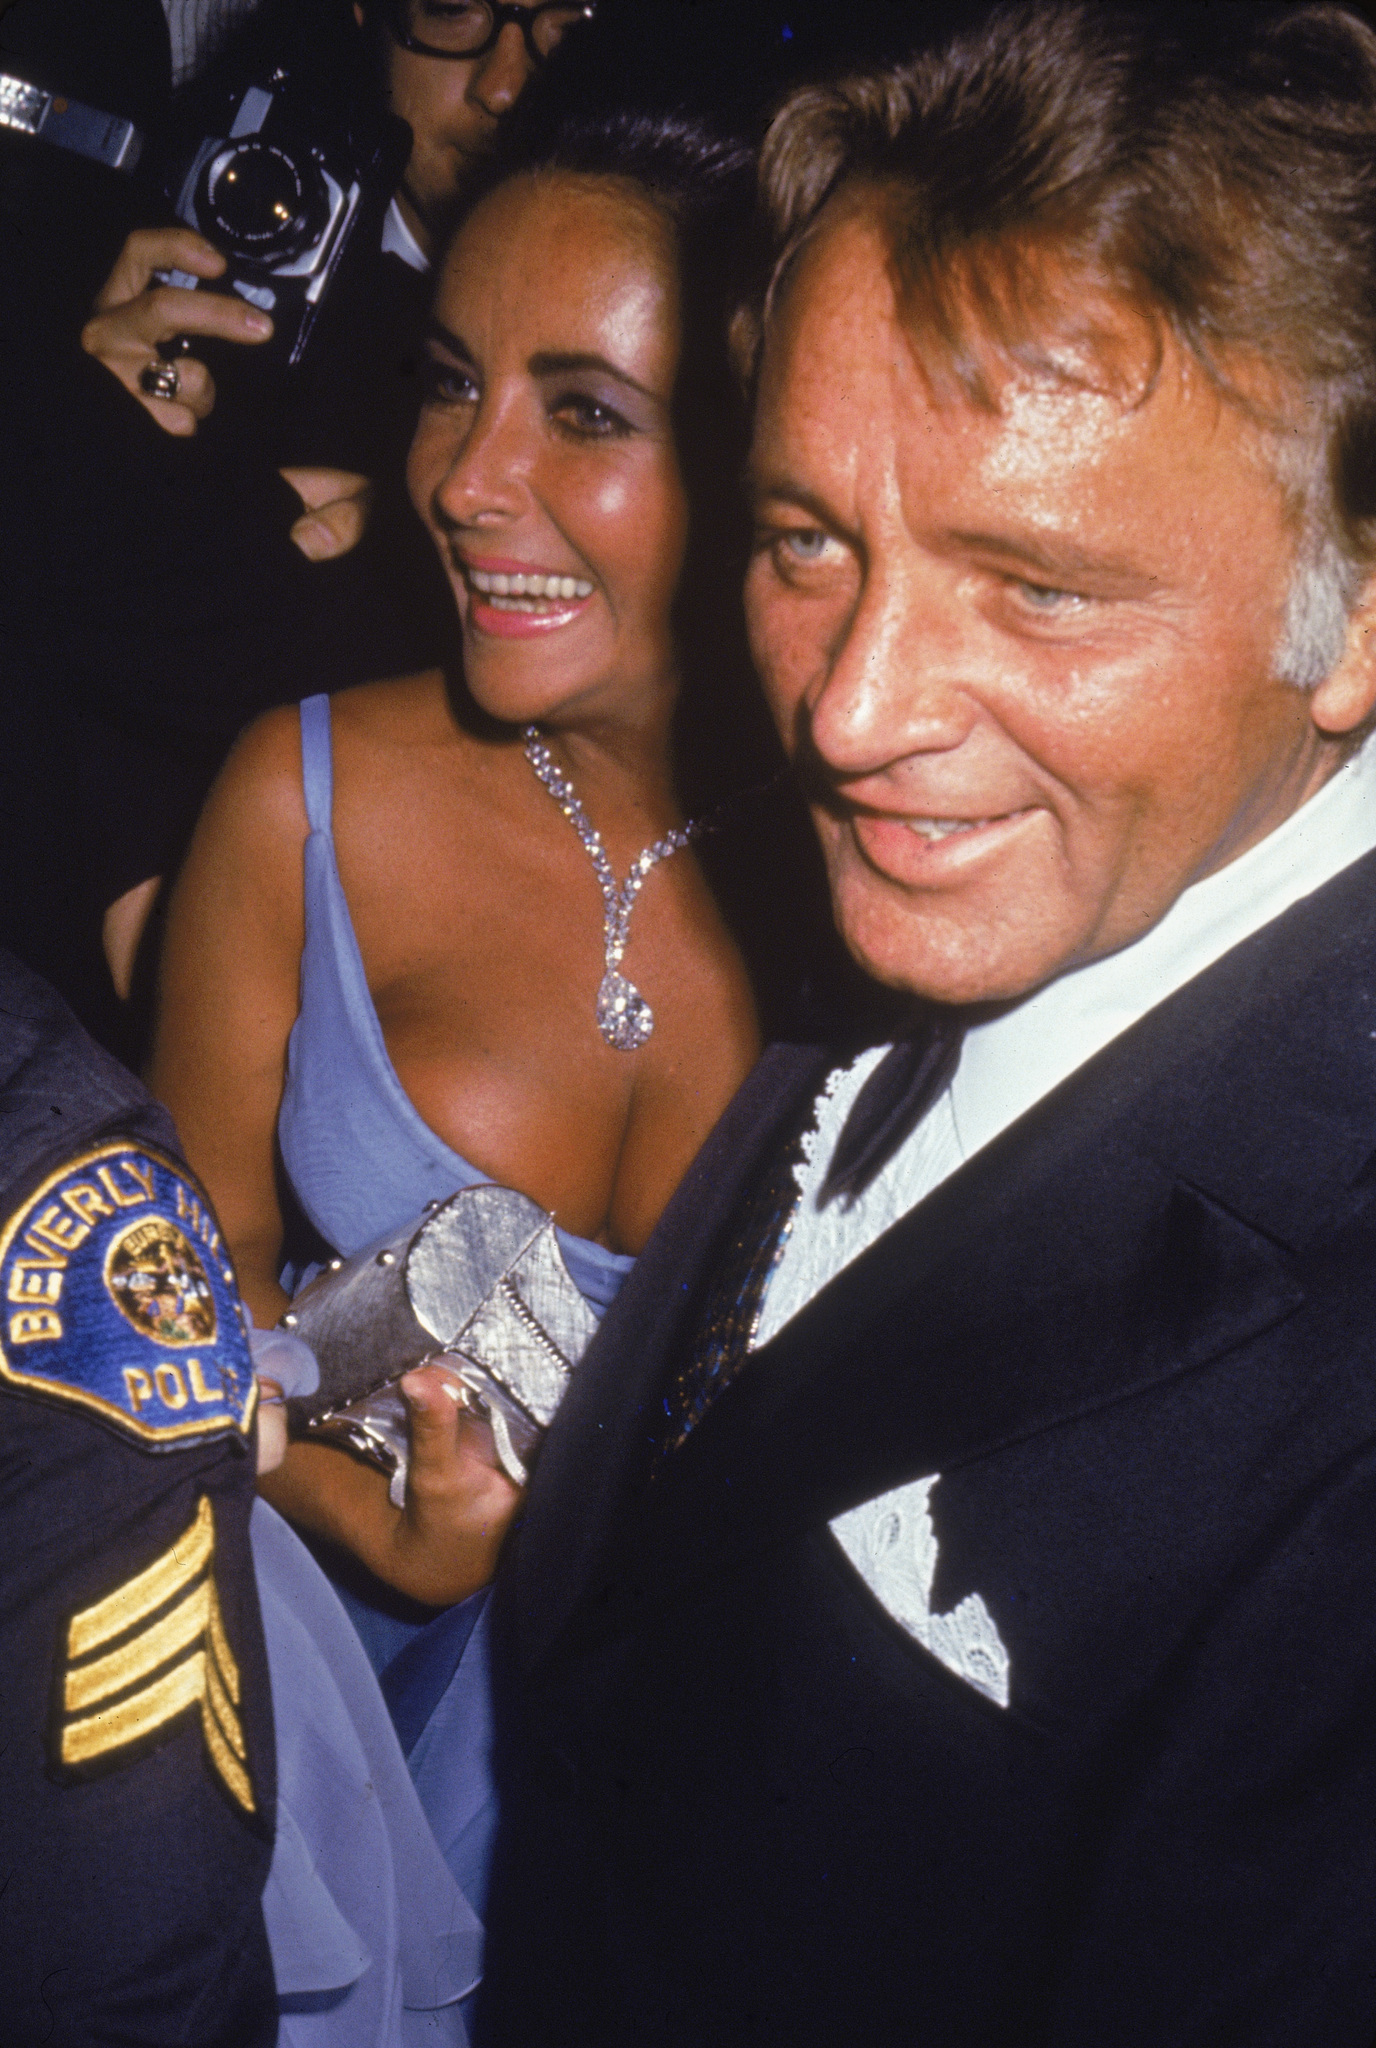 Richard Burton and Elizabeth Taylor at an event for The 42nd Annual Academy Awards (1970)